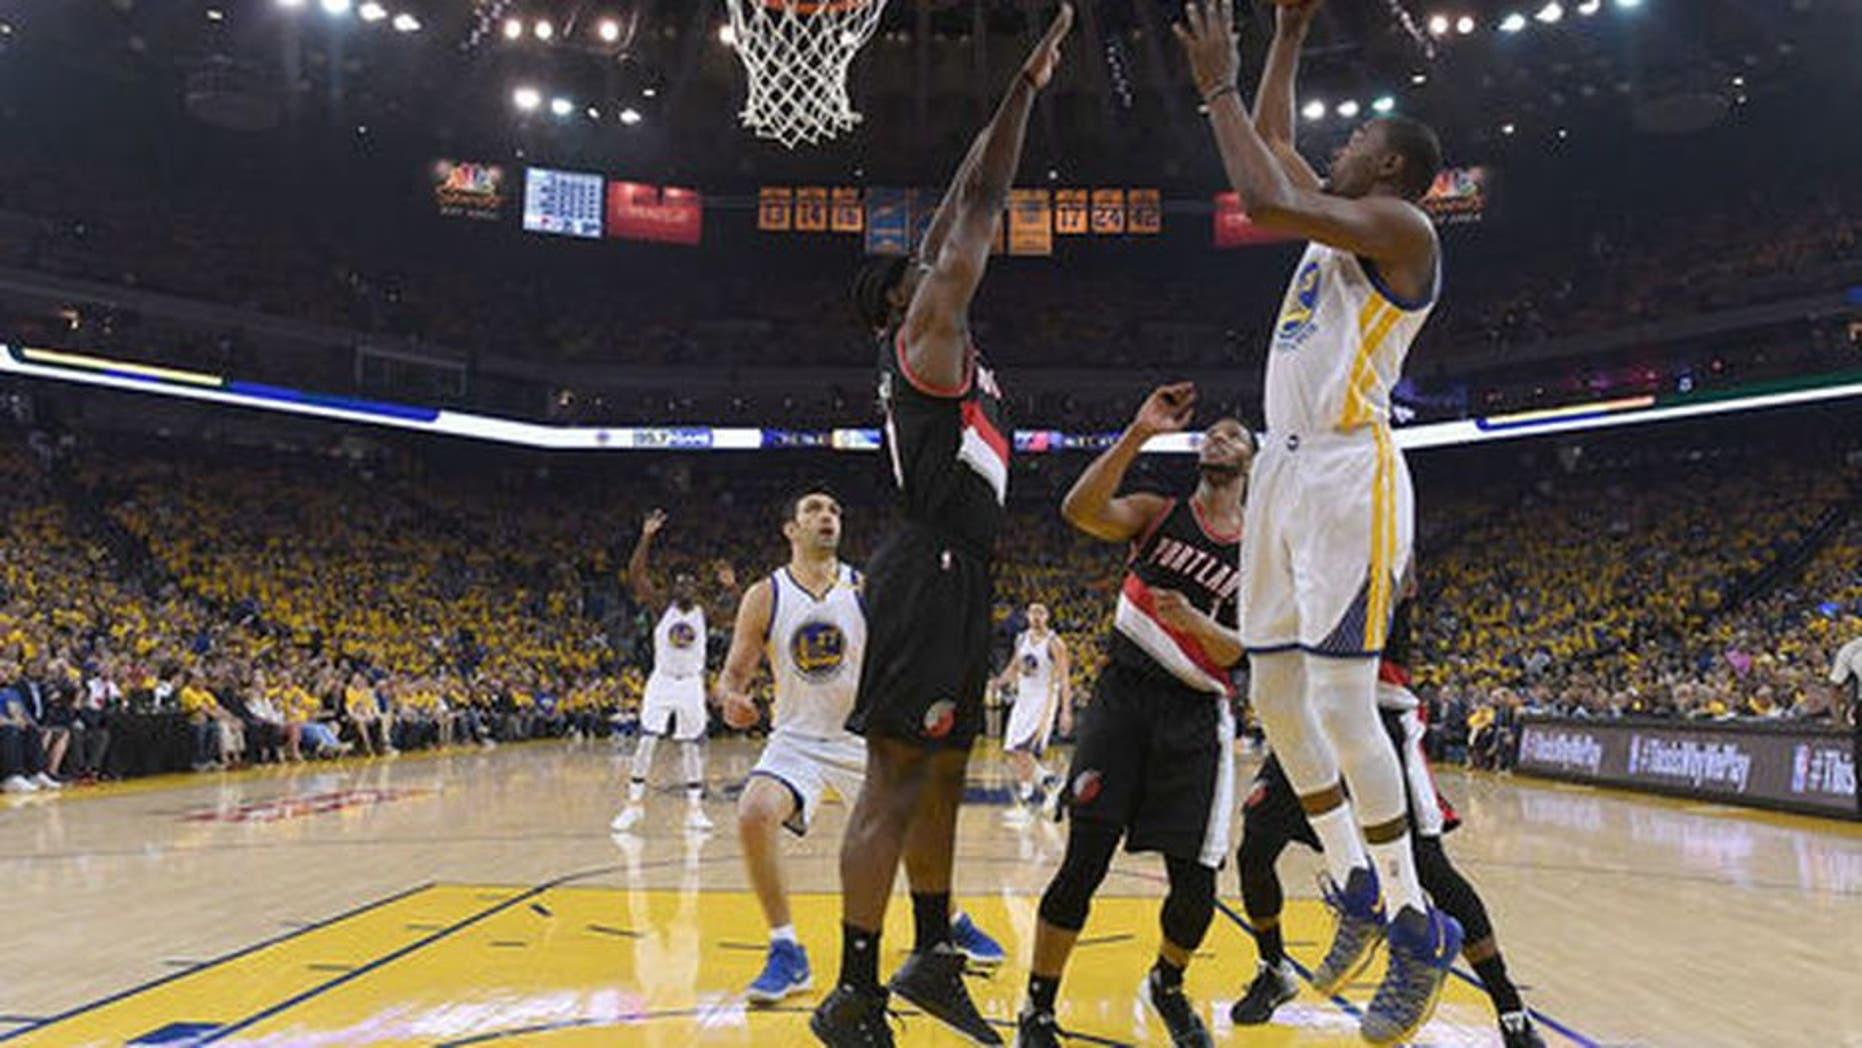 OAKLAND, CA - APRIL 16: Kevin Durant #35 of the Golden State Warriors goes up for a layup over Noah Vonleh #21 of the Portland Trail Blazers in the first quarter during Game One of the first round of the 2017 NBA Playoffs at ORACLE Arena on April 16, 2017 in Oakland, California. NOTE TO USER: User expressly acknowledges and agrees that, by downloading and or using this photograph, User is consenting to the terms and conditions of the Getty Images License Agreement. (Photo by Thearon W. Henderson/Getty Images)